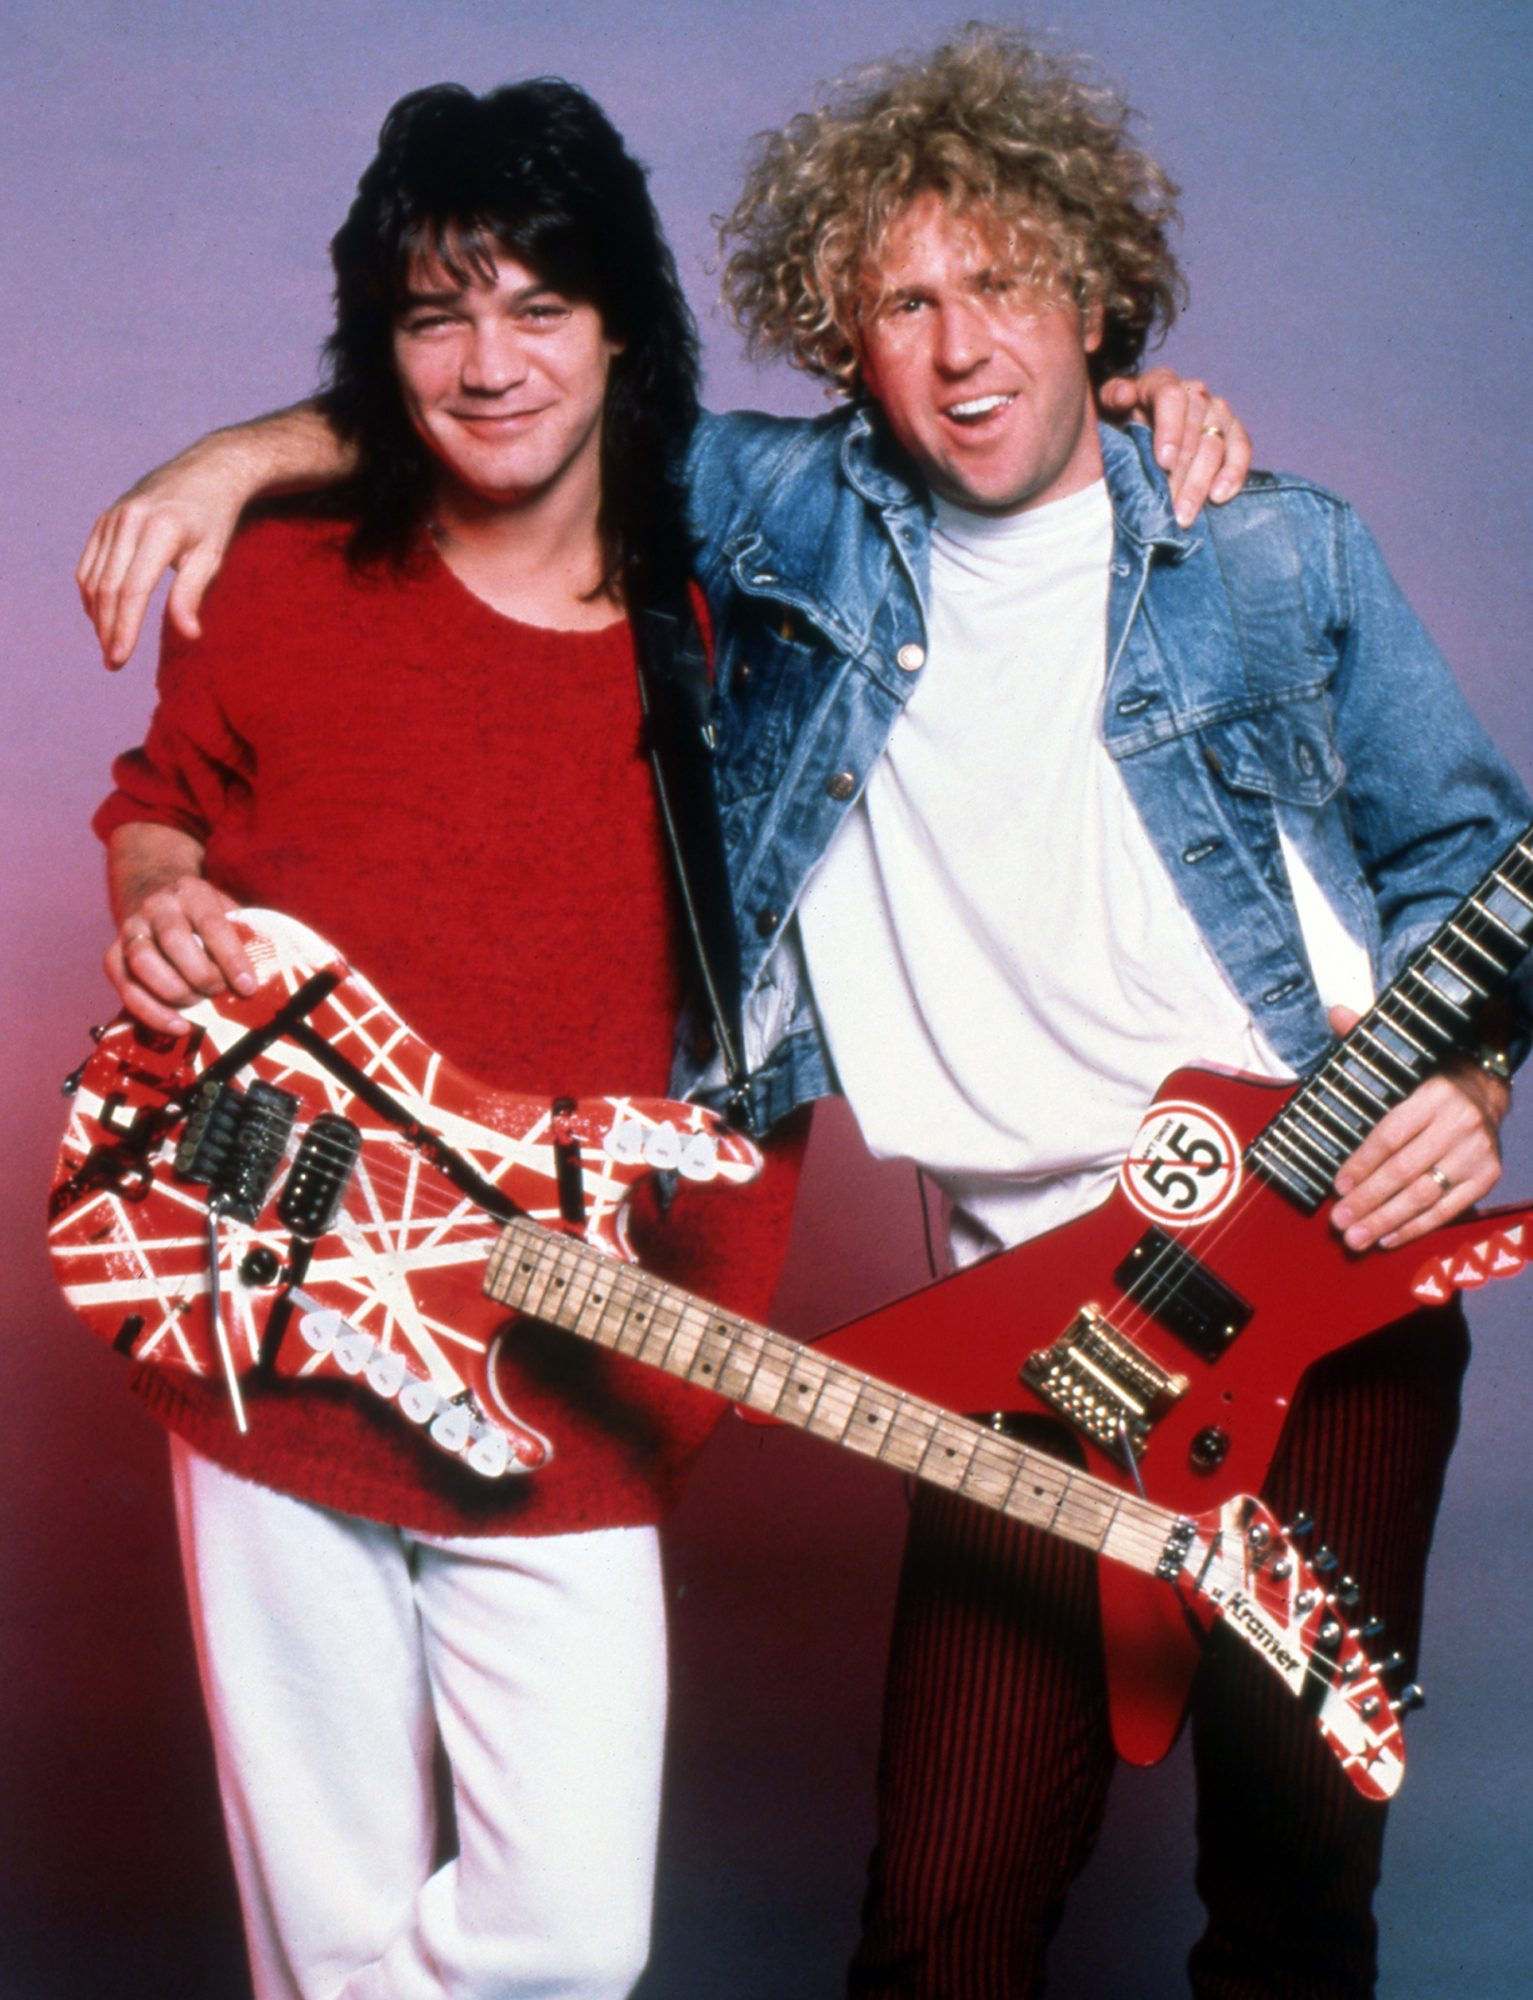 Sammy Hagar Says He Reconciled with Eddie Van Halen Before He Died |  PEOPLE.com